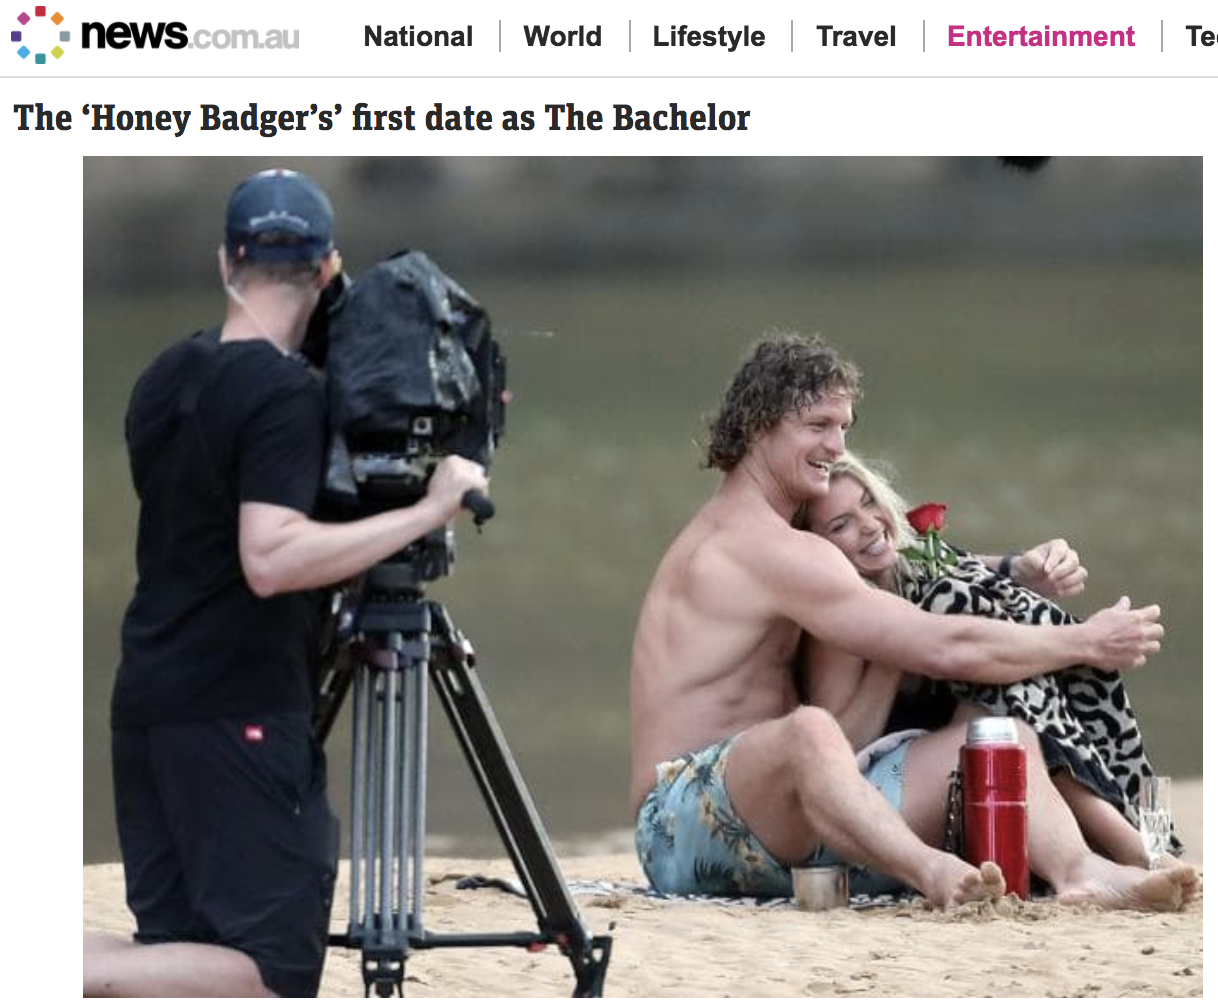 The Bachelor paparrazi photo (news.com.au) [2]